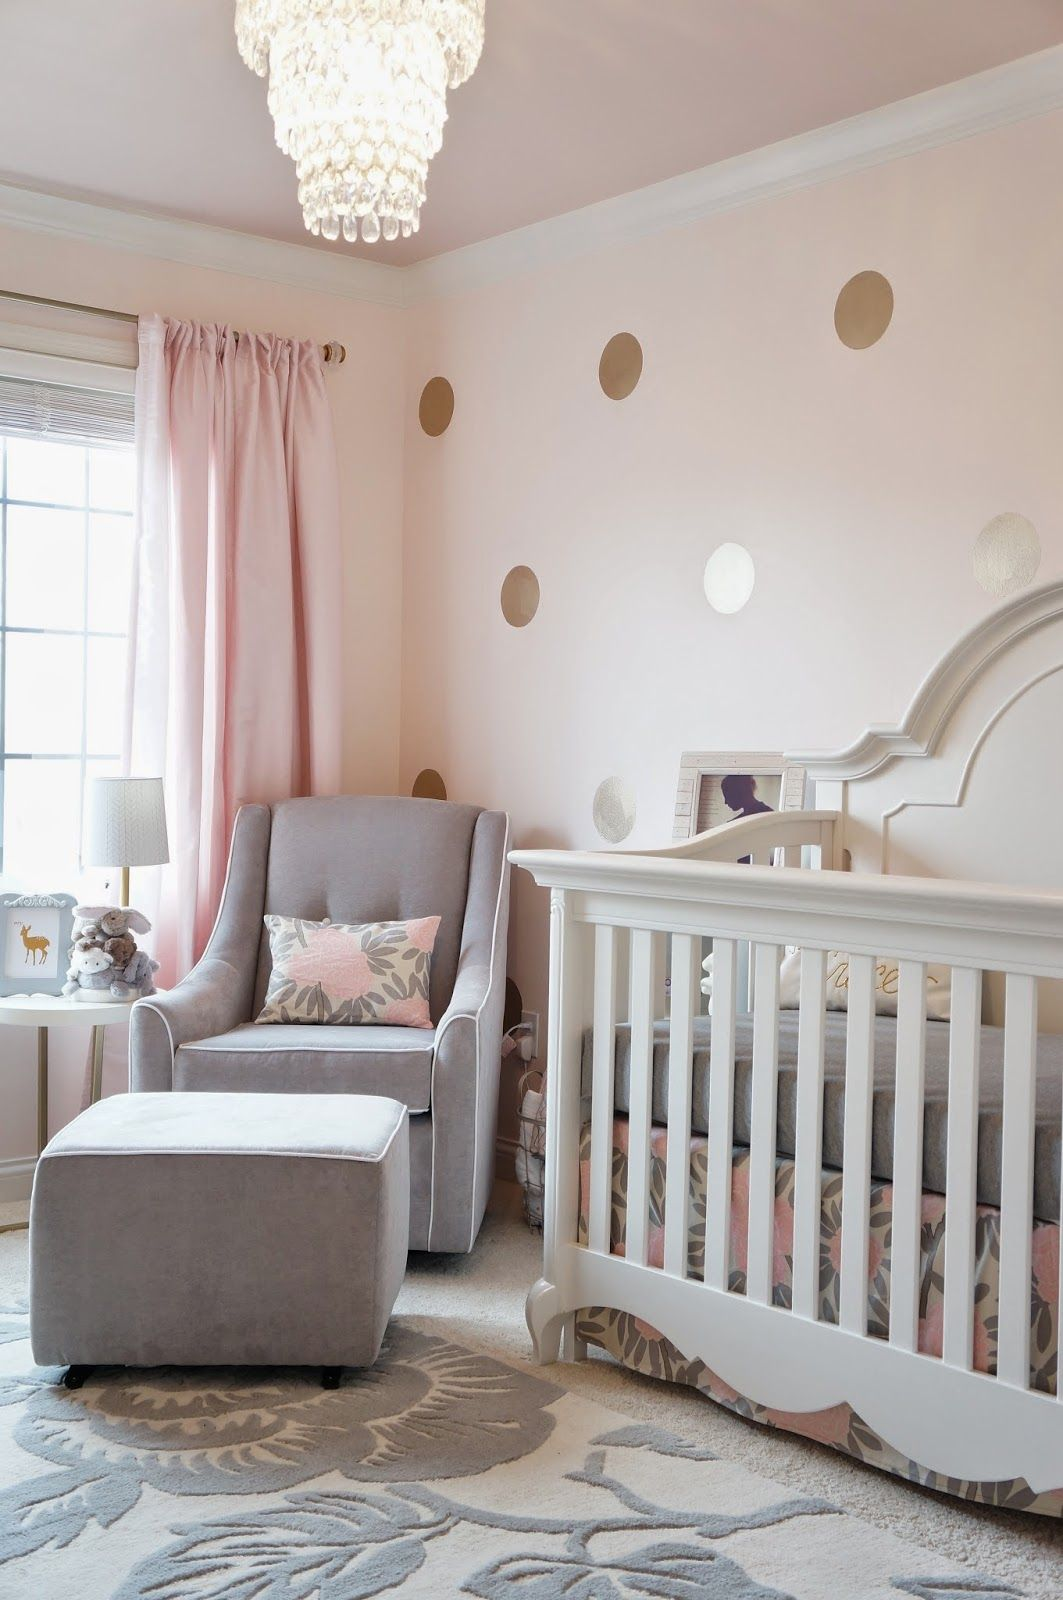 39 id es inspirations pour la d coration de la chambre for Decoration chambre bebe fille photo